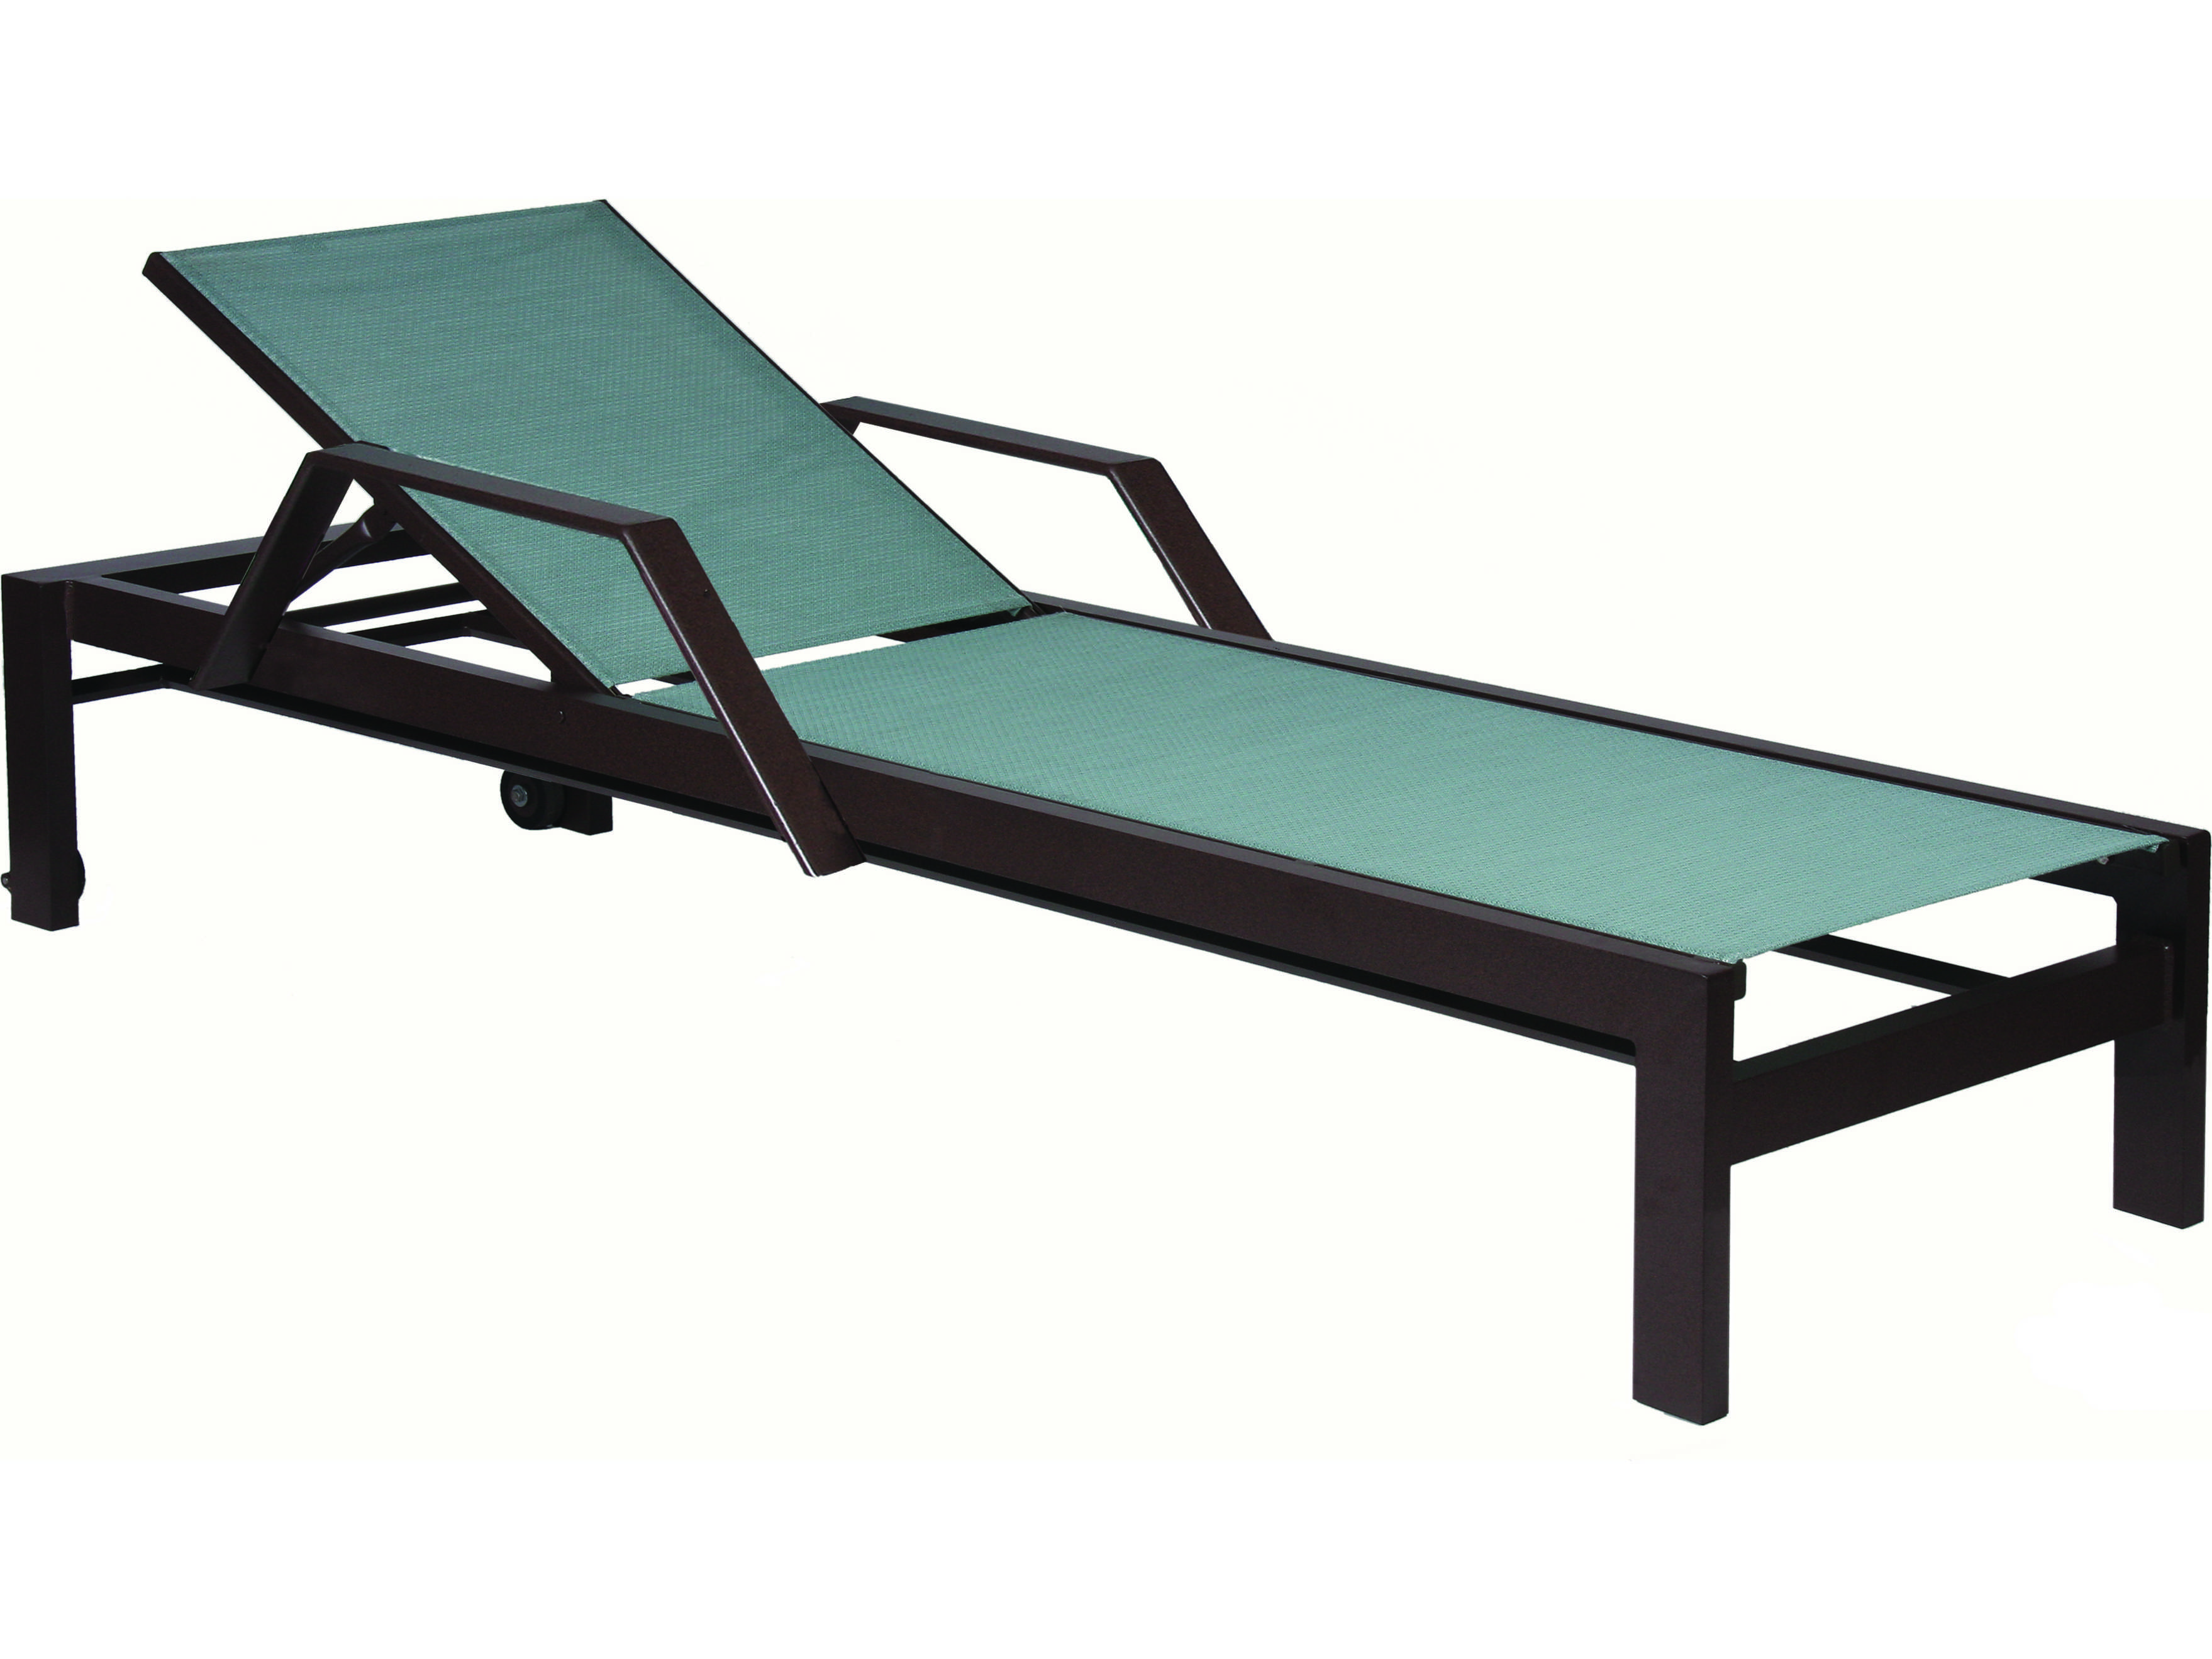 Suncoast vectra bold sling cast aluminum chaise lounge for Cast aluminum chaise